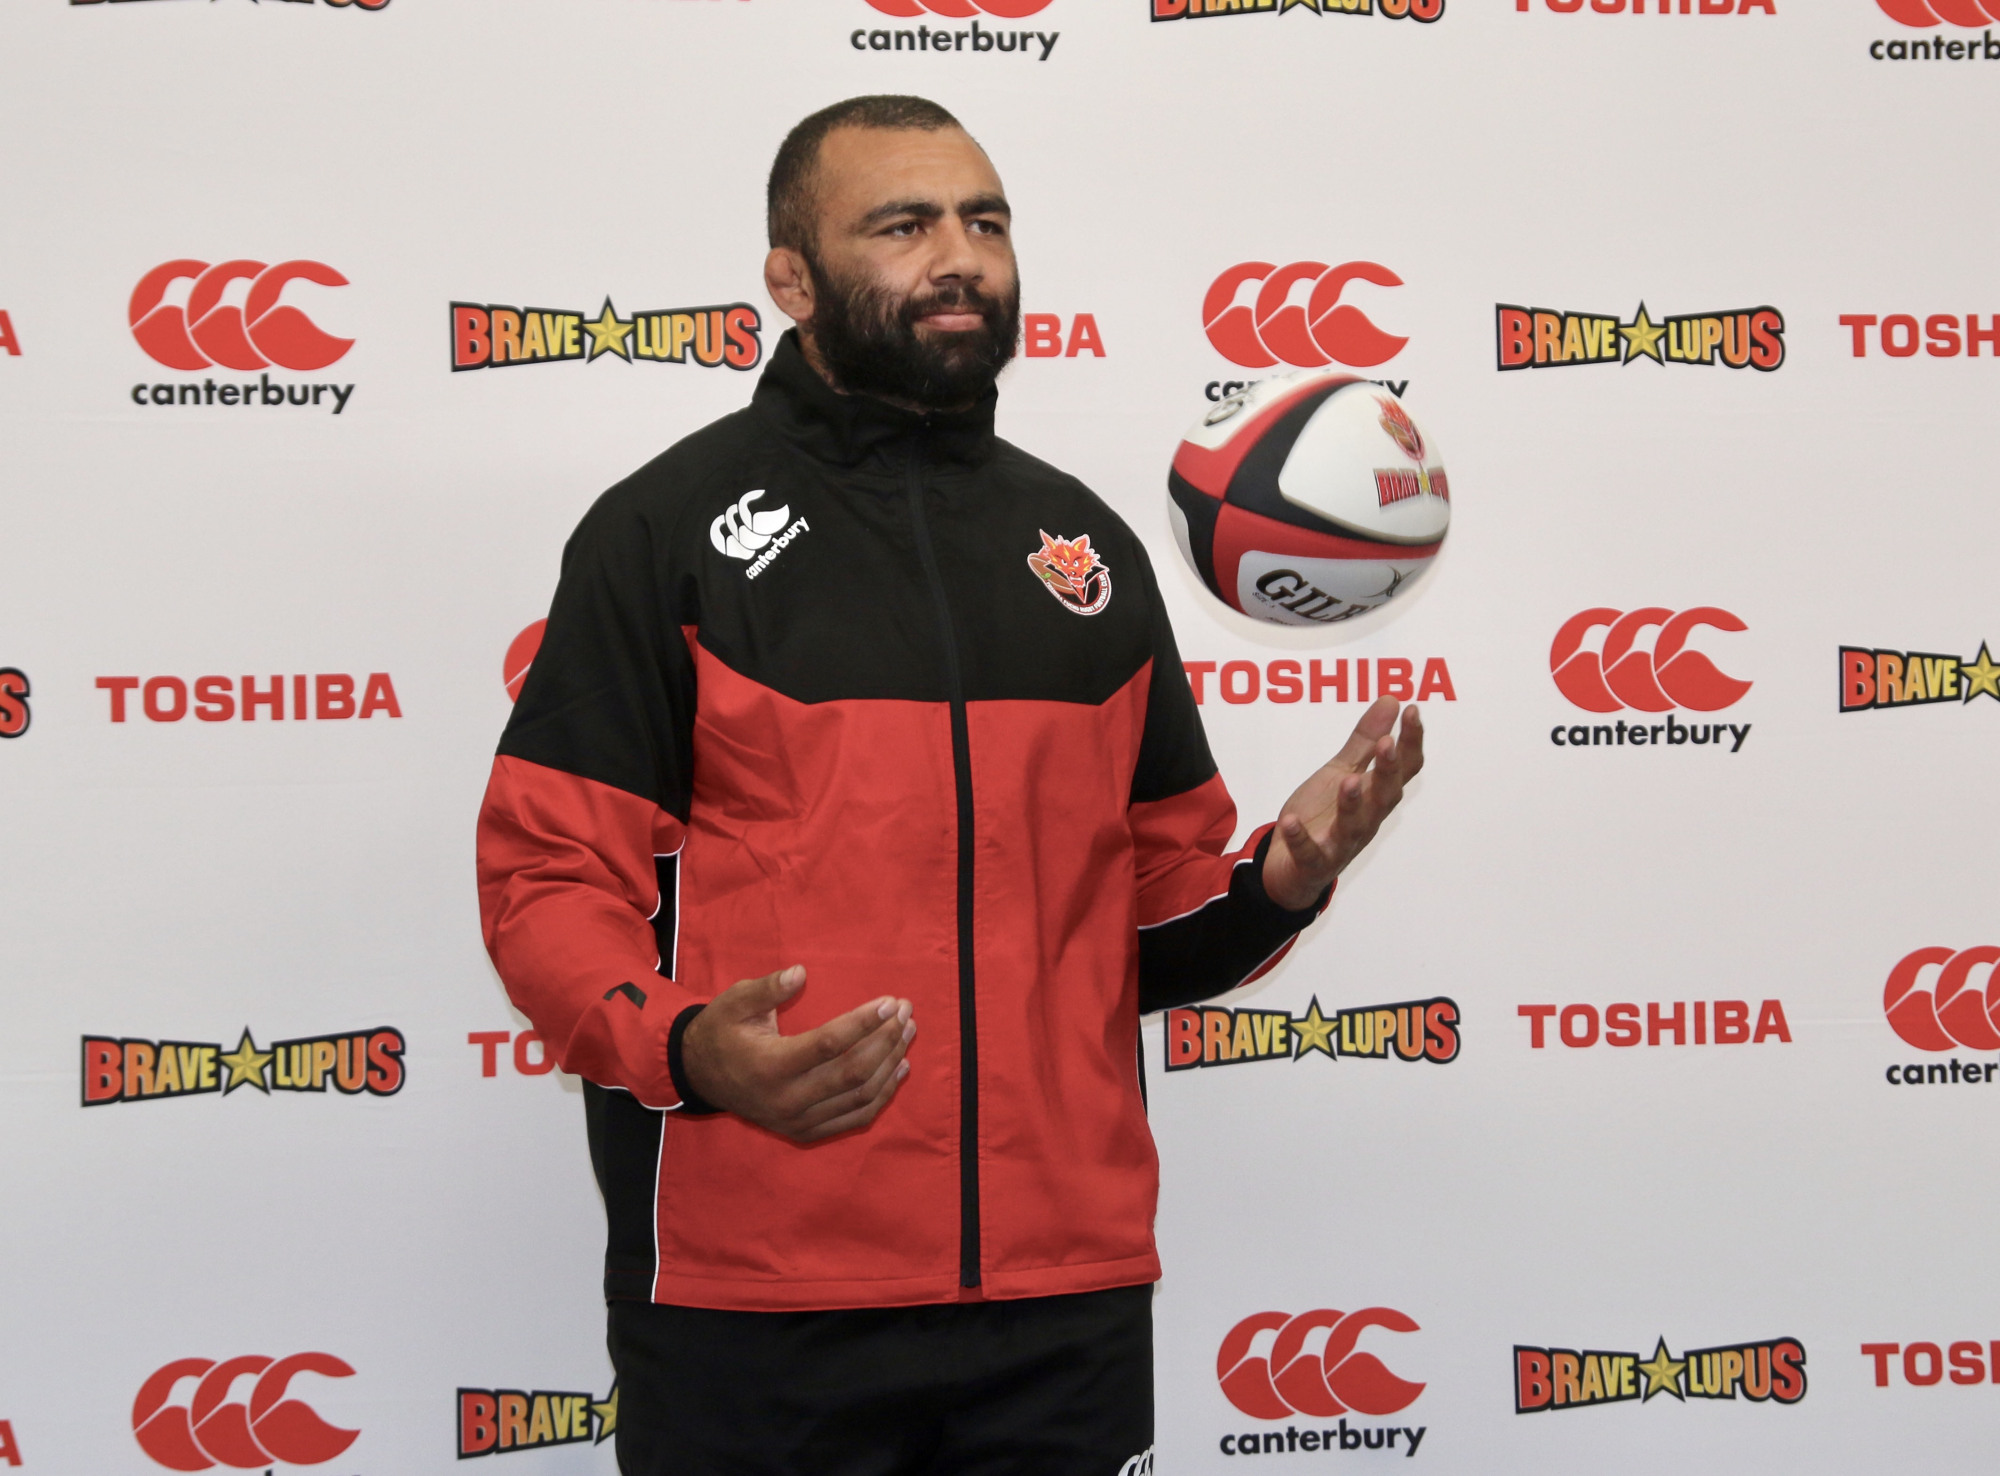 Brave Lupus player Michael Leitch participates in a news conference on Tuesday in Fuchu. Leitch is currently preparing for the upcoming Top League season. | KAZ NAGATSUKA